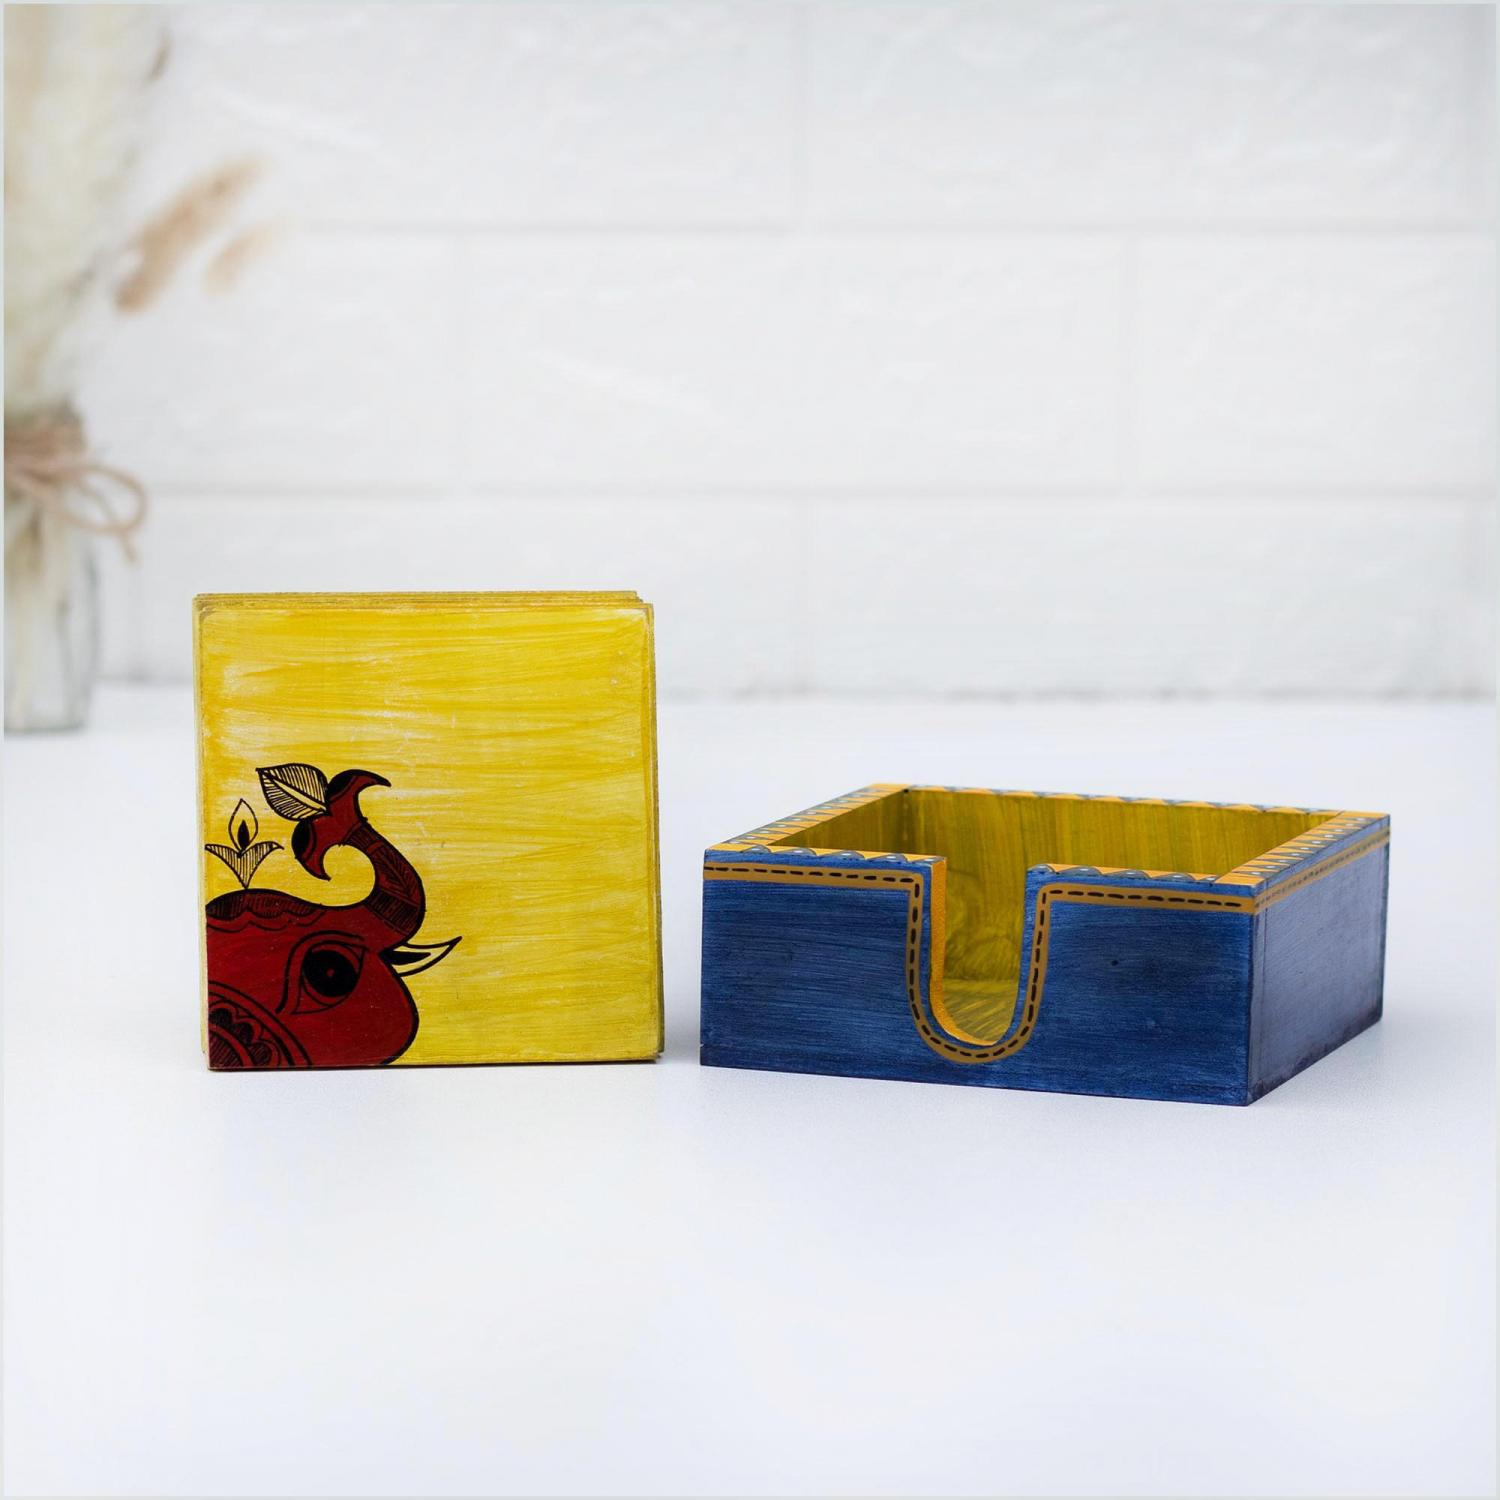 Wooden coaster set in yellow color with an elephant motif standing next to a blue and yellow holder on a white table with a white wall and dried flowers in the background